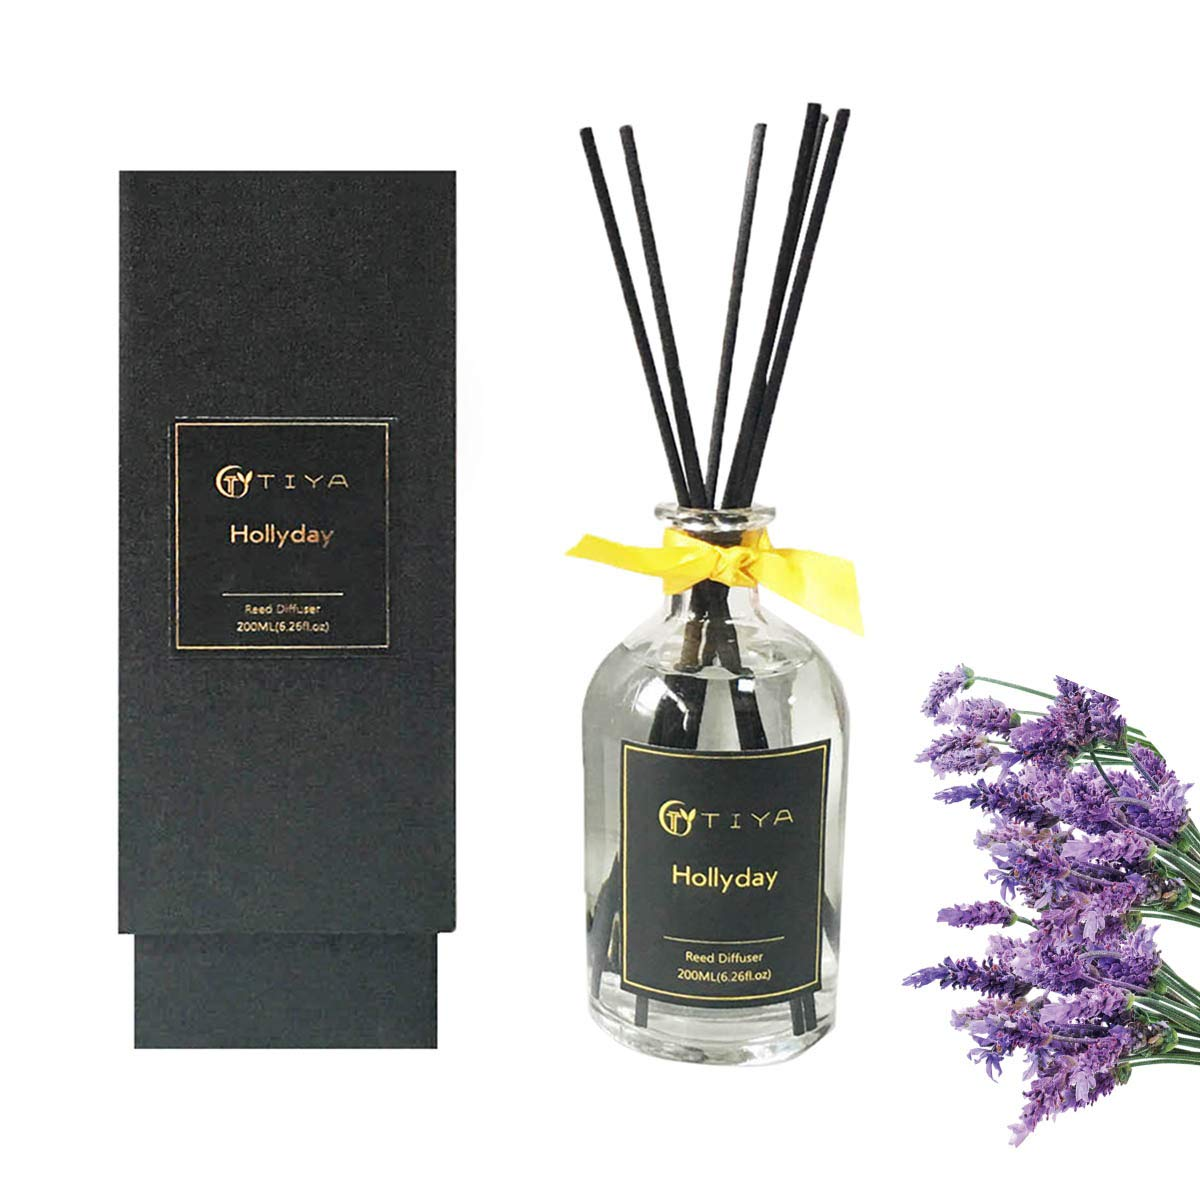 AROMATICSTORE Lavender and Lemongrass Reed Diffuser, 200 ML Essential Oil Aromatherapy Fragrance with Reed Sticks by AROMATICSTORE (Image #1)